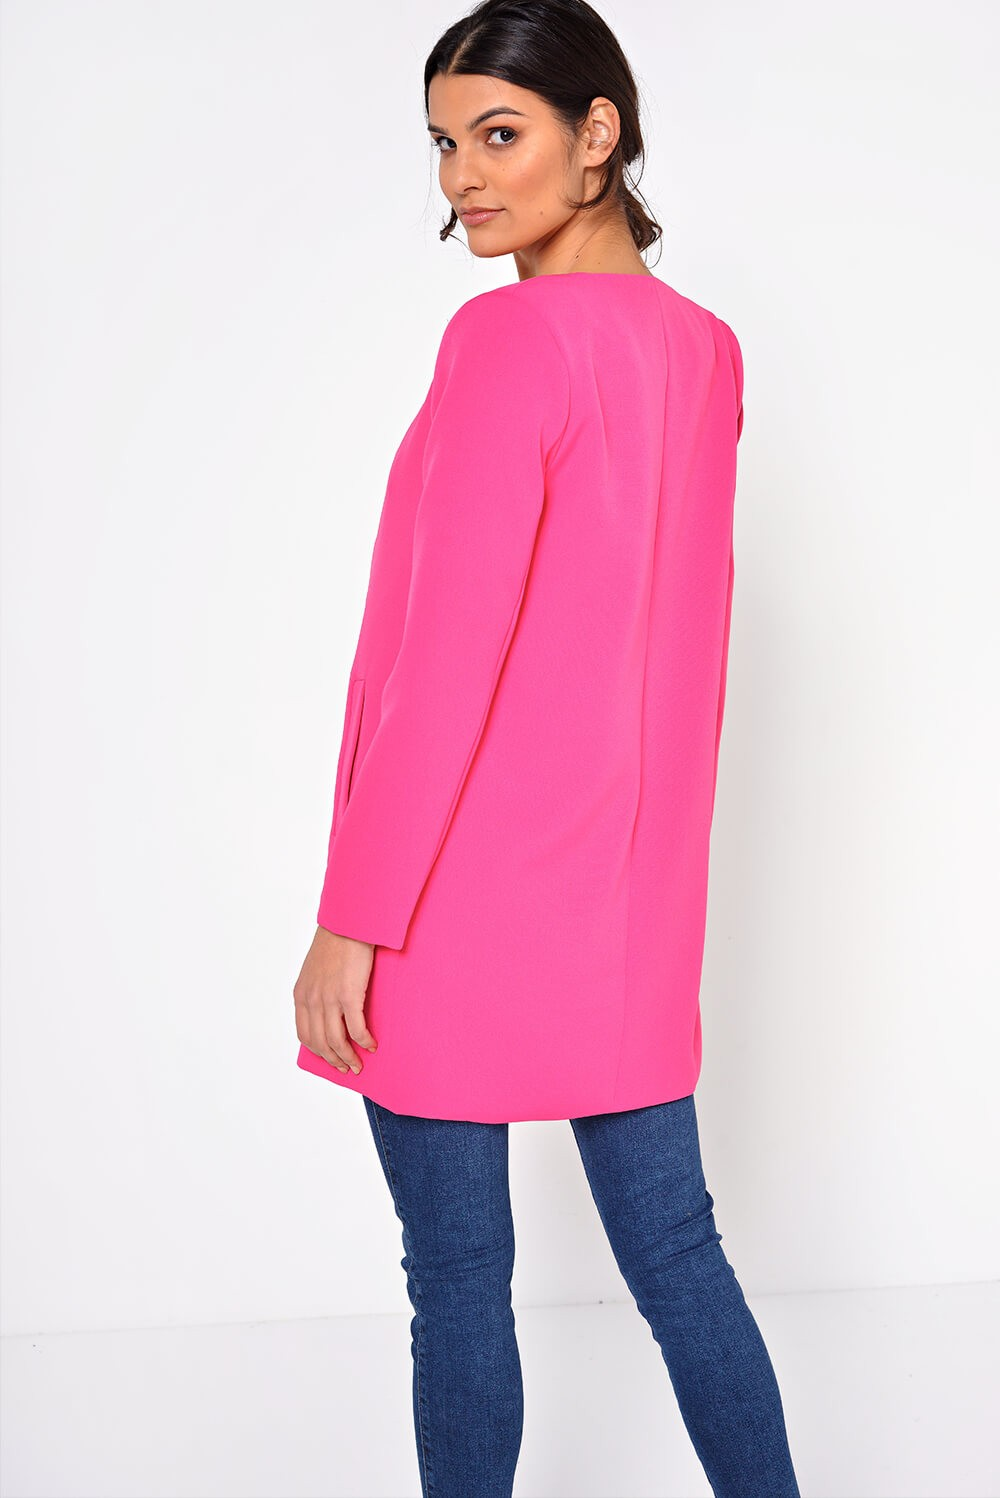 Marc Angelo Aria Longline Blazer in Cerise | iCLOTHING